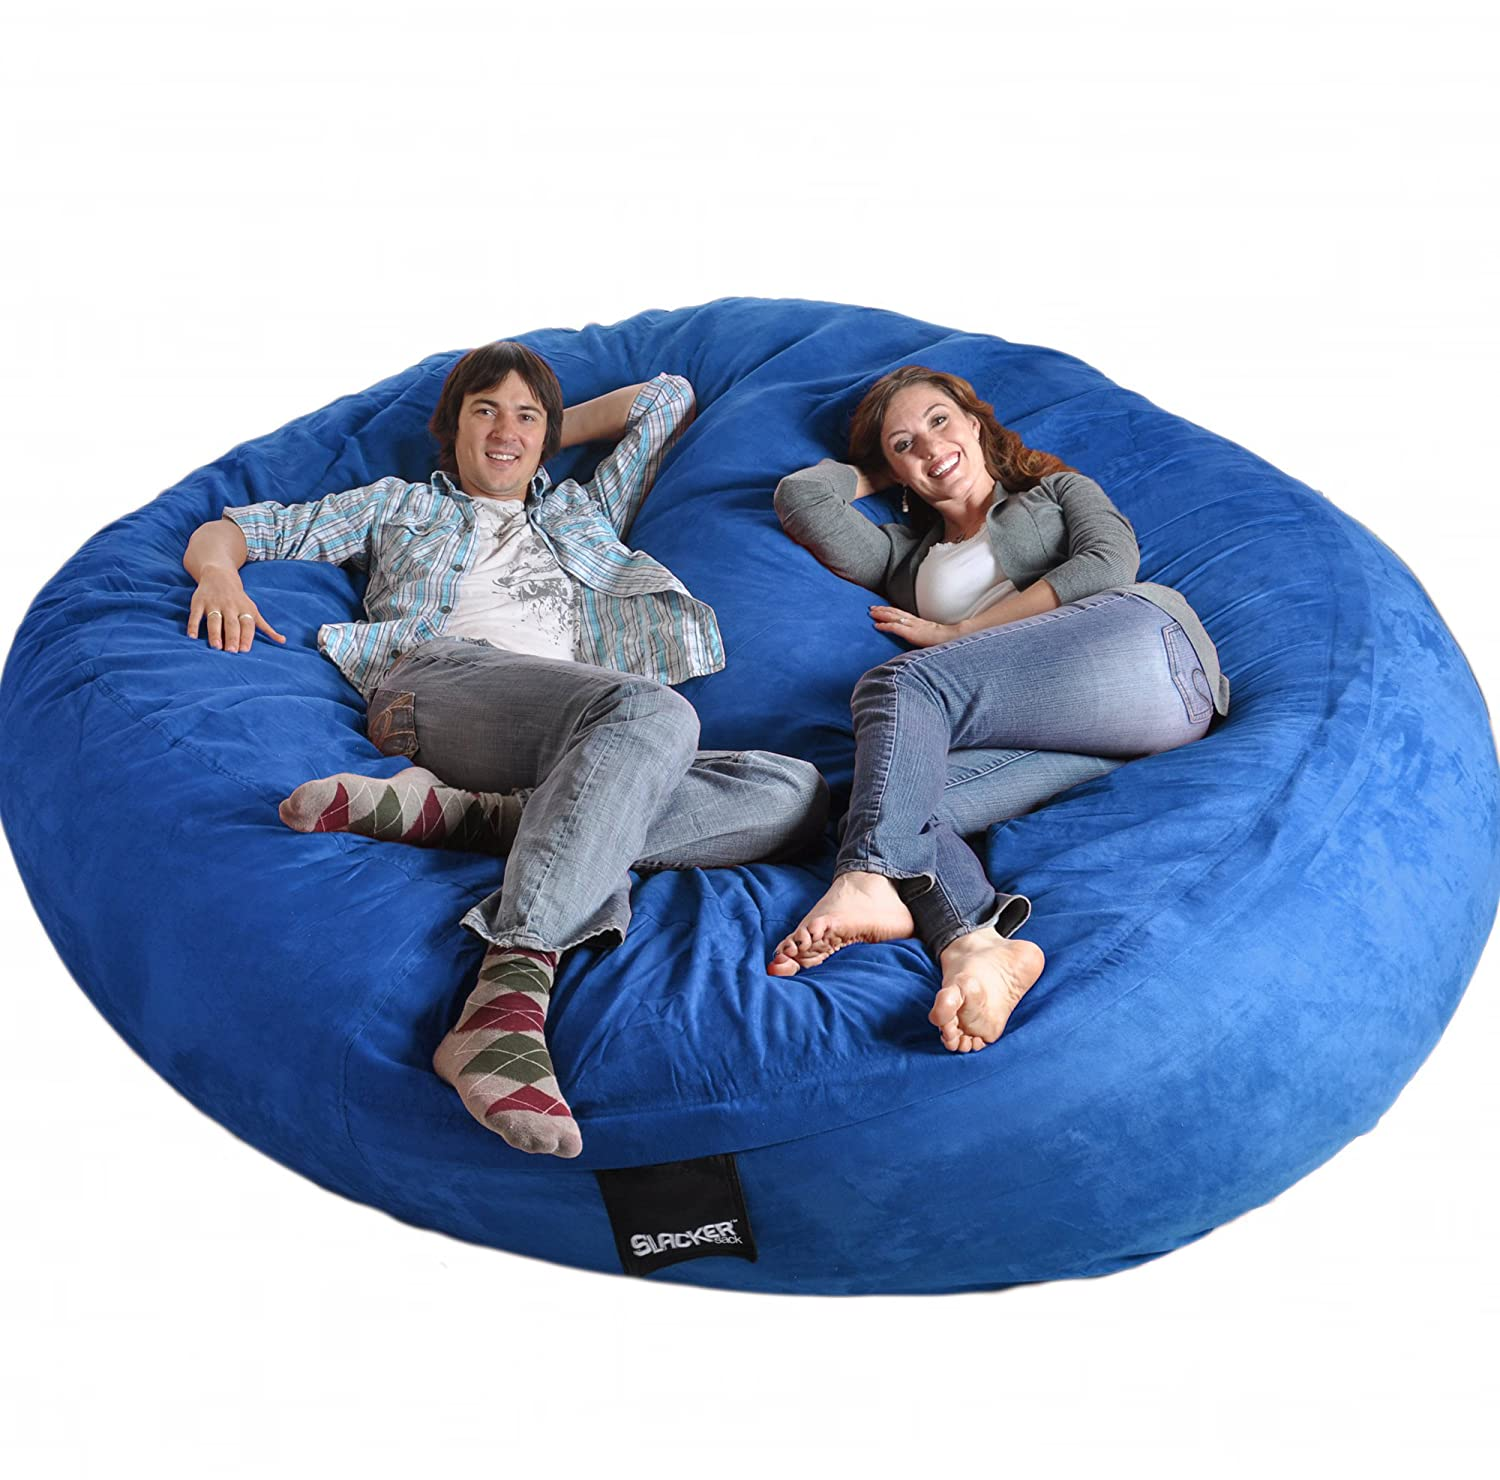 Amazon 8 Feet Round Royal Blue XXXL Foam Bean Bag Chair Microfiber Suede Giant SLACKER Sack Like LoveSac Biggest Beanbag Kitchen Dining